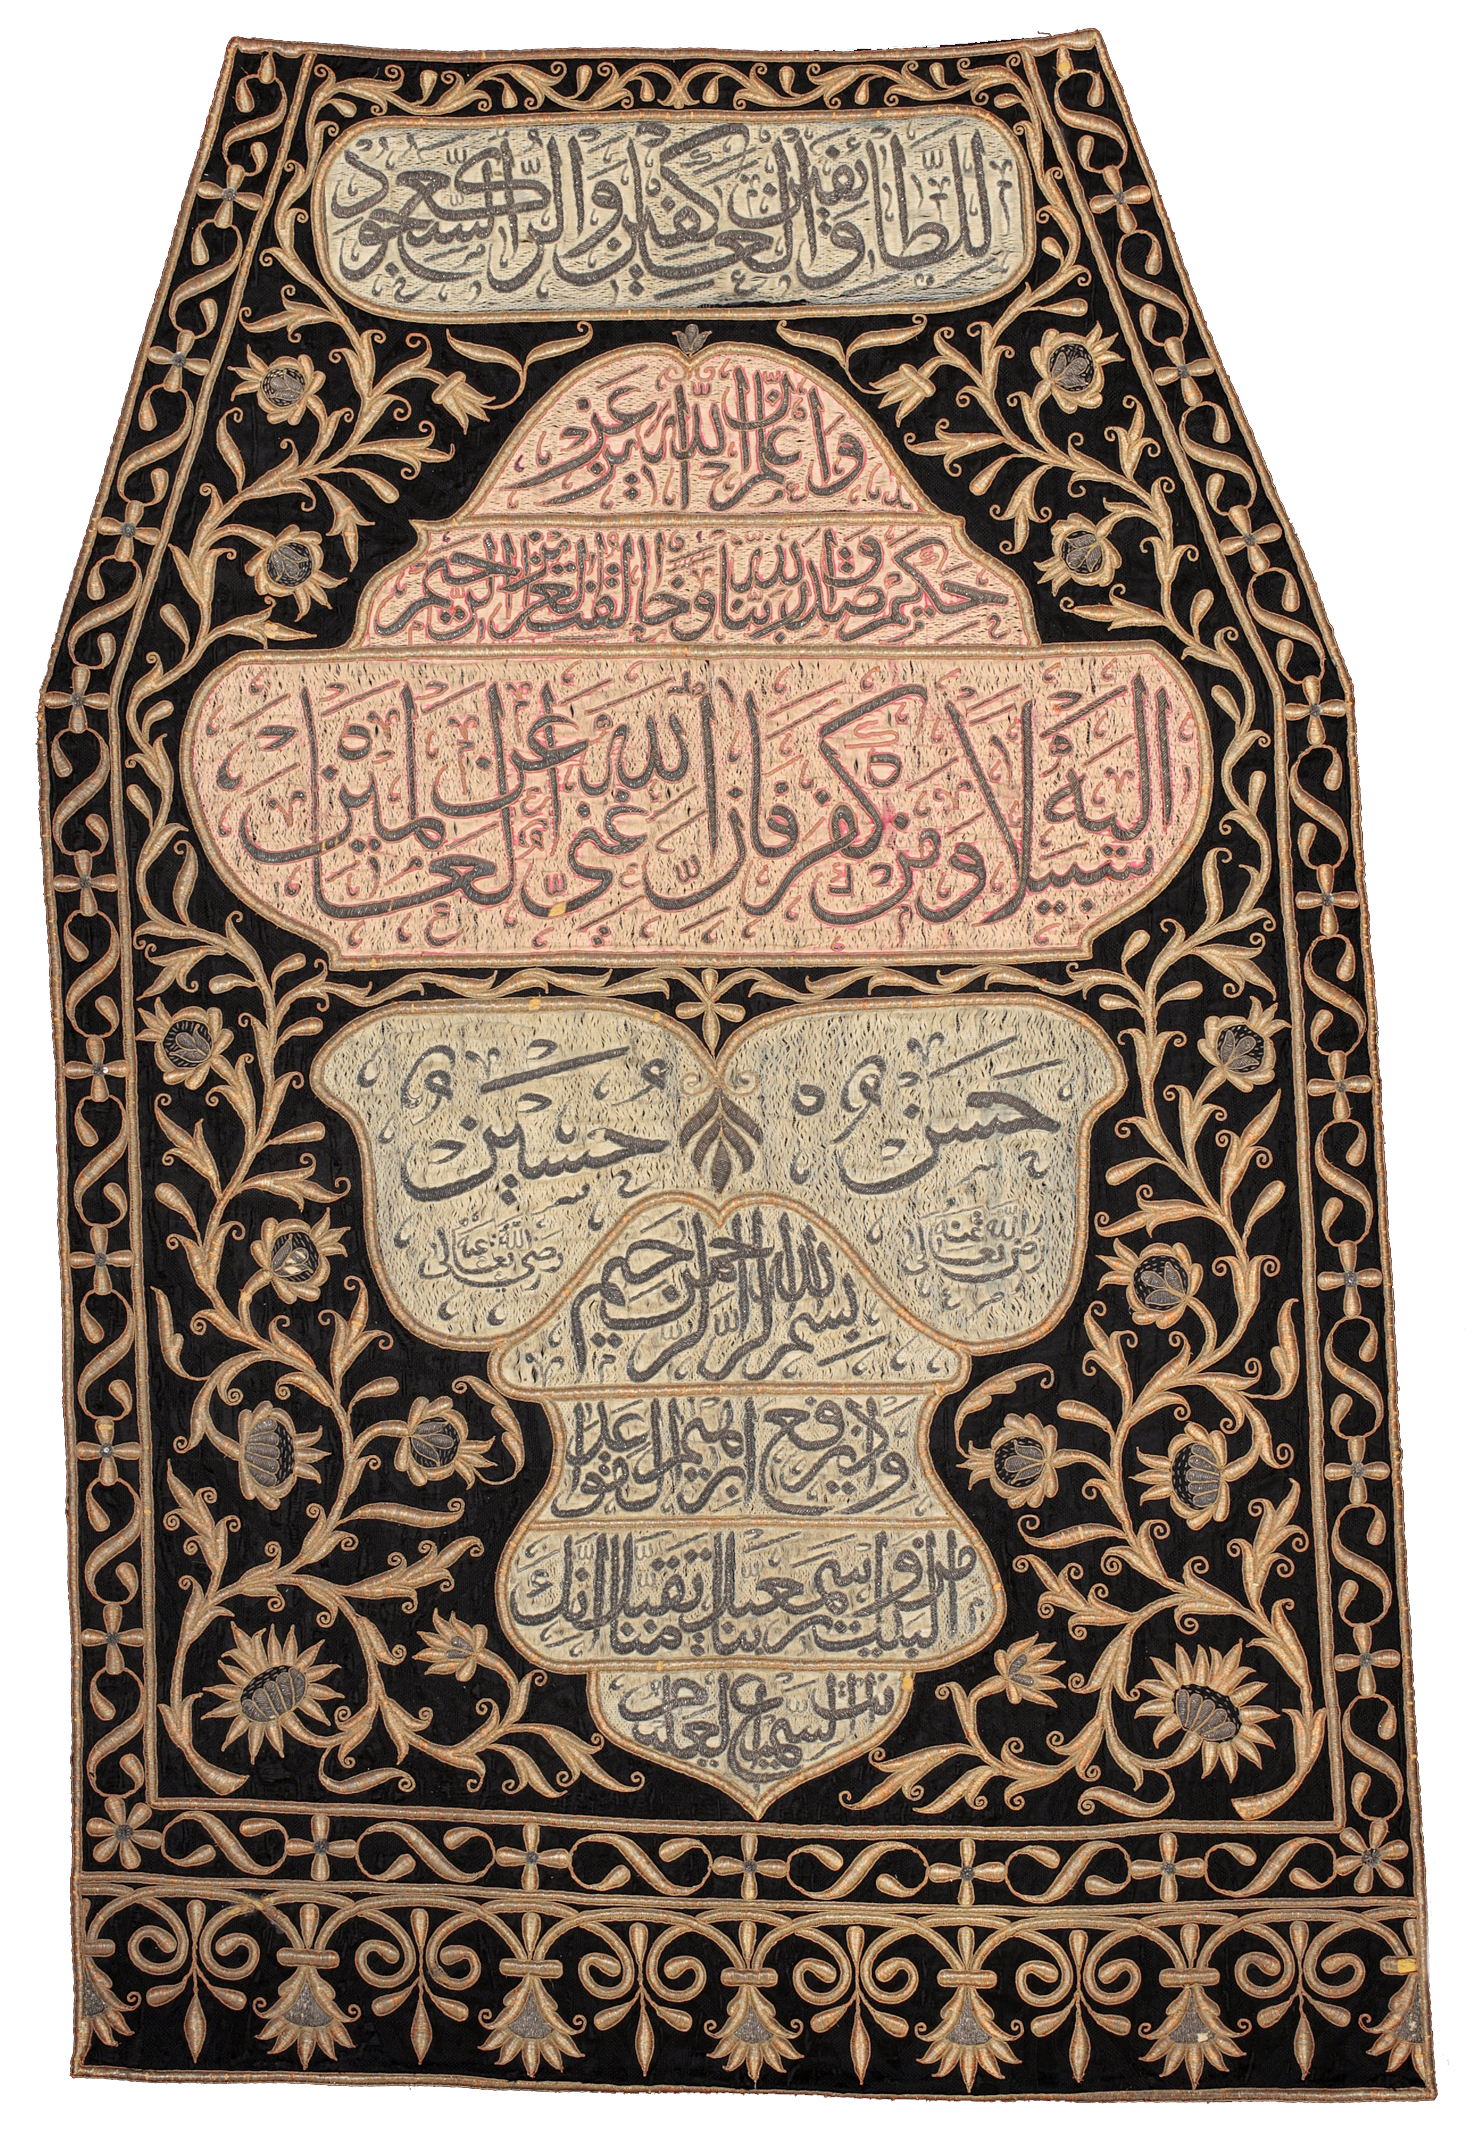 The fourth panel from the kiswah of Maqam Ibrahim, embroidered on a section of the kiswah of the Ka'bah